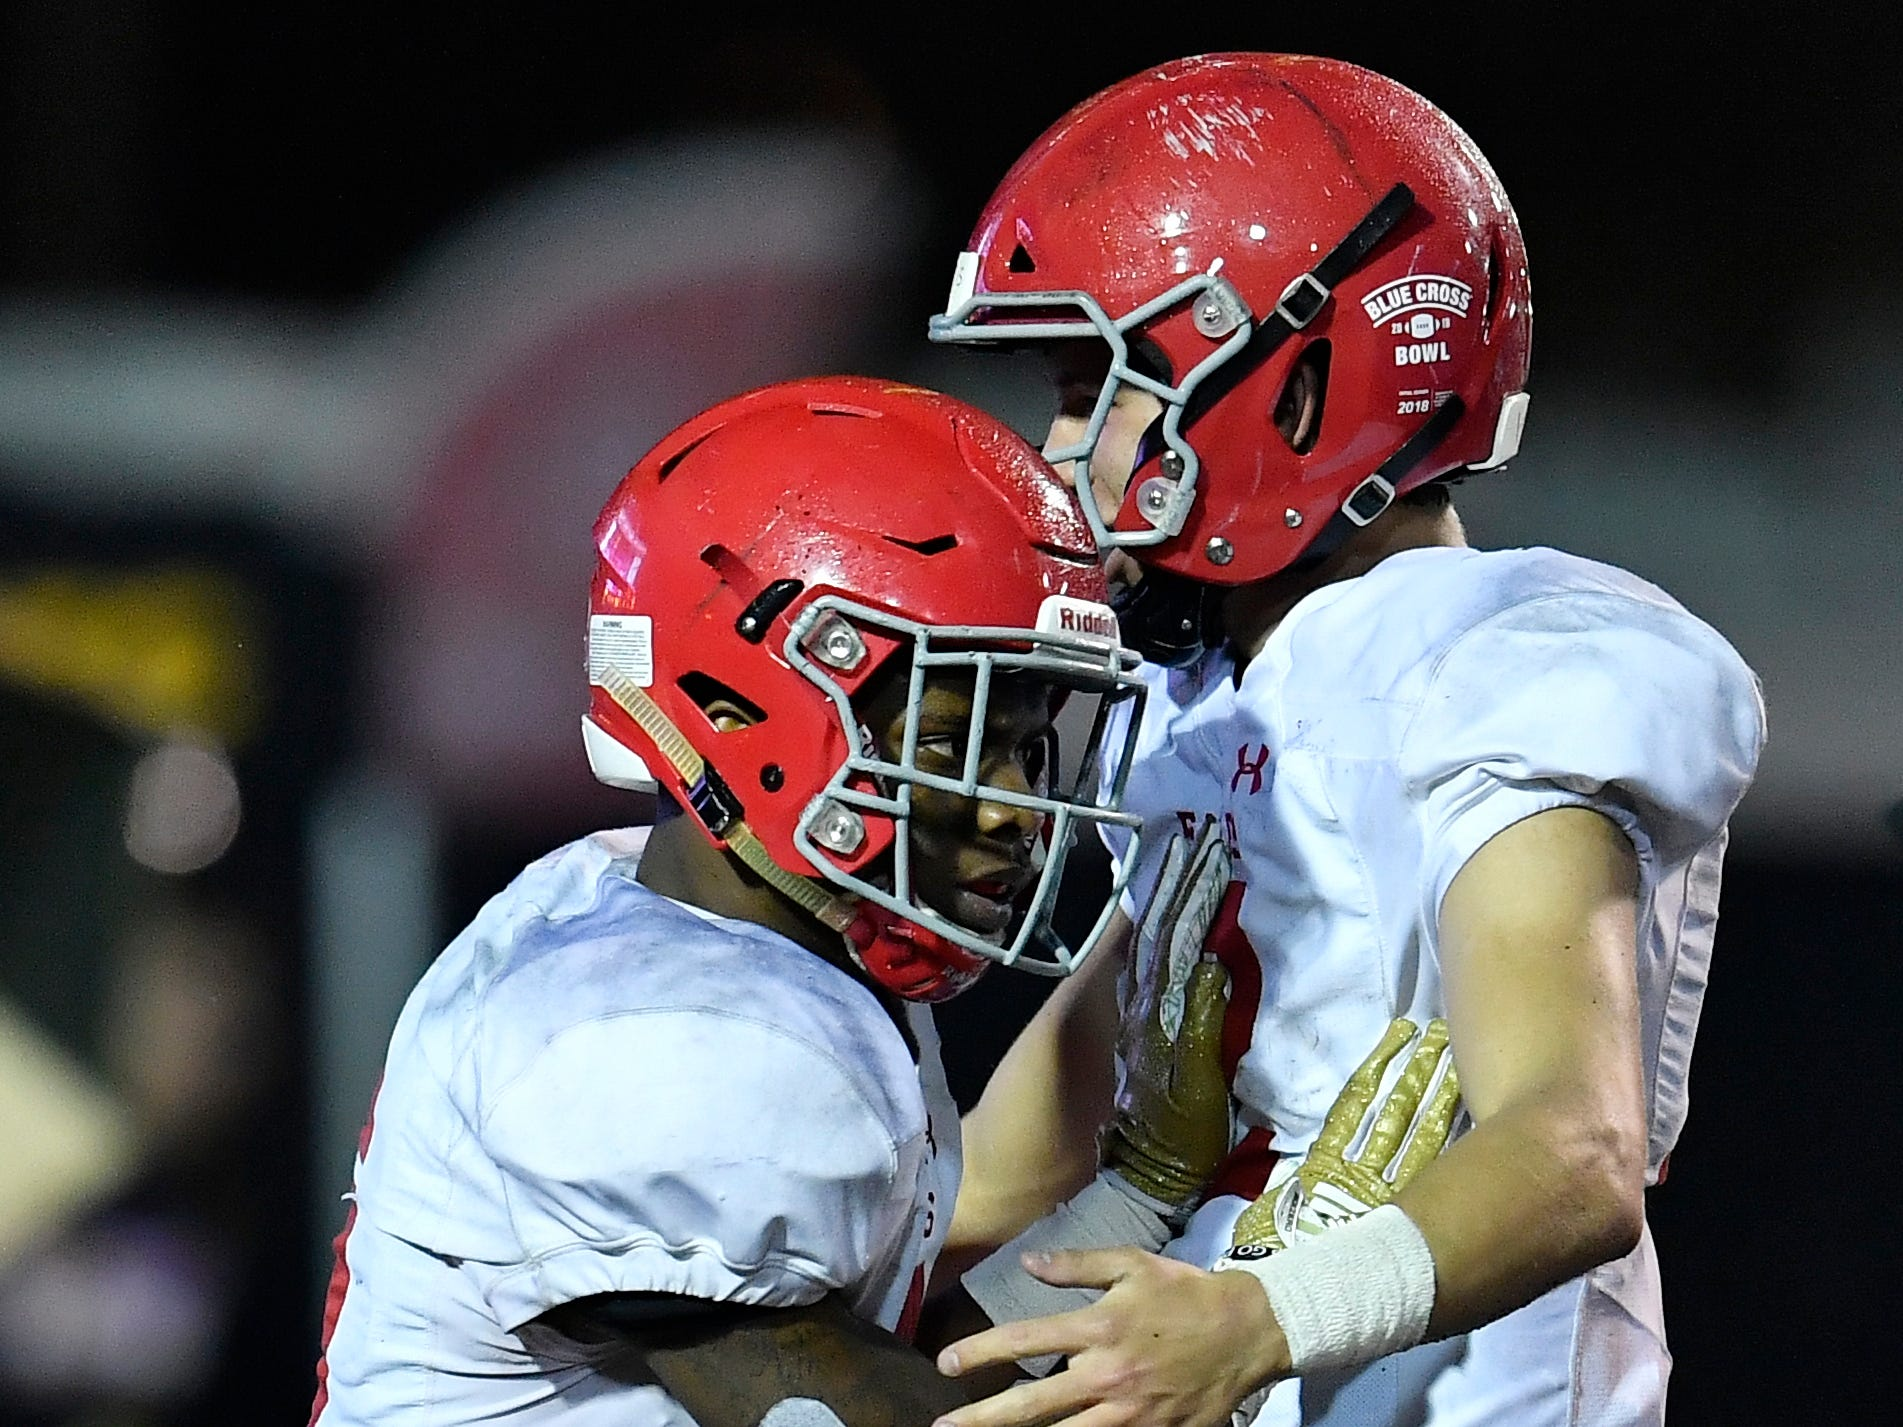 Brentwood Academy running back Tomario Pleasant (5) is congratulated for his touchdown in the second quarter at the Division II-AAA BlueCross Bowl state championship at Tennessee Tech's Tucker Stadium in Cookeville, Tenn., on Friday, Nov. 30, 2018.